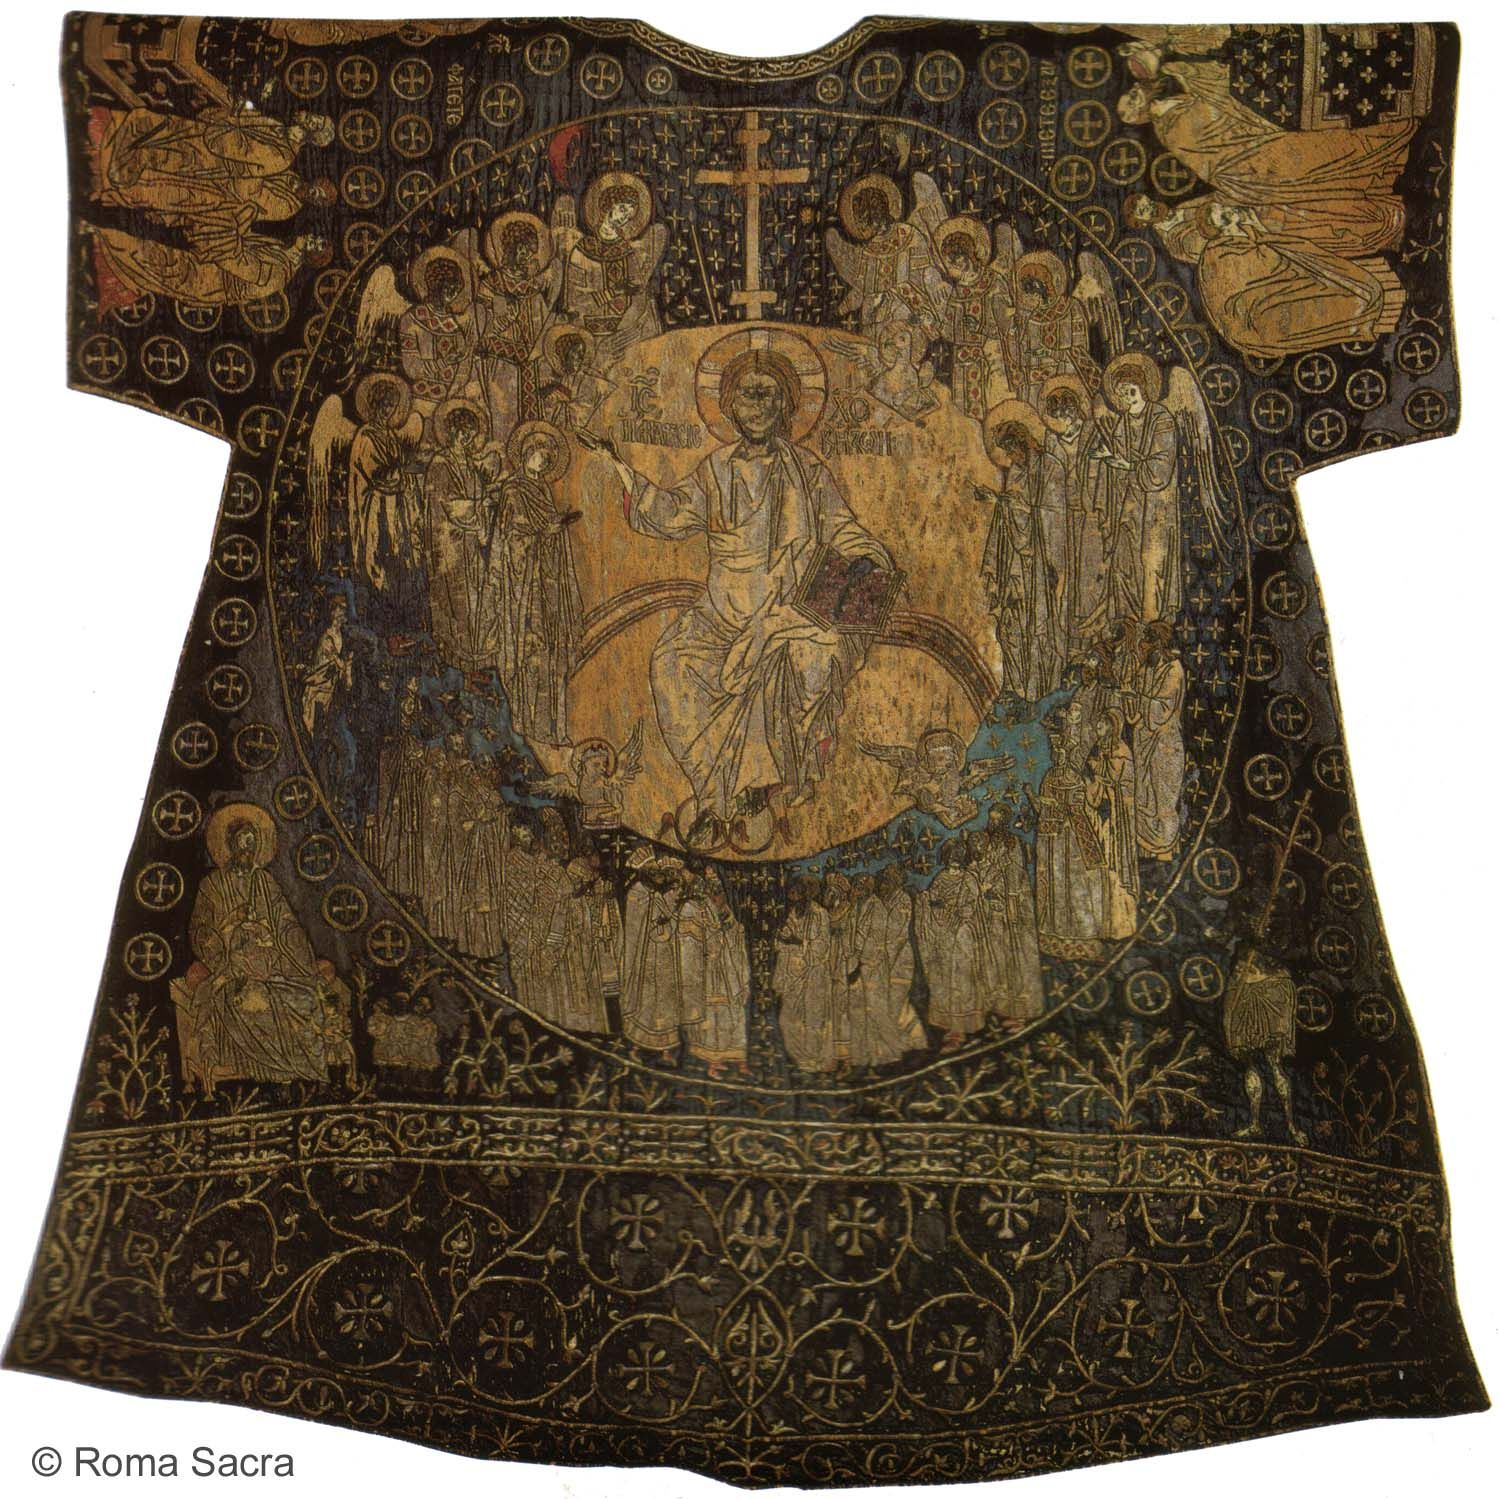 Dalmatic of Charlemagne. The dalmatic is a long wide-sleeved tunic, which serves as a liturgical vestment in the Roman Catholic, Lutheran, Anglican, and United Methodist Churches,